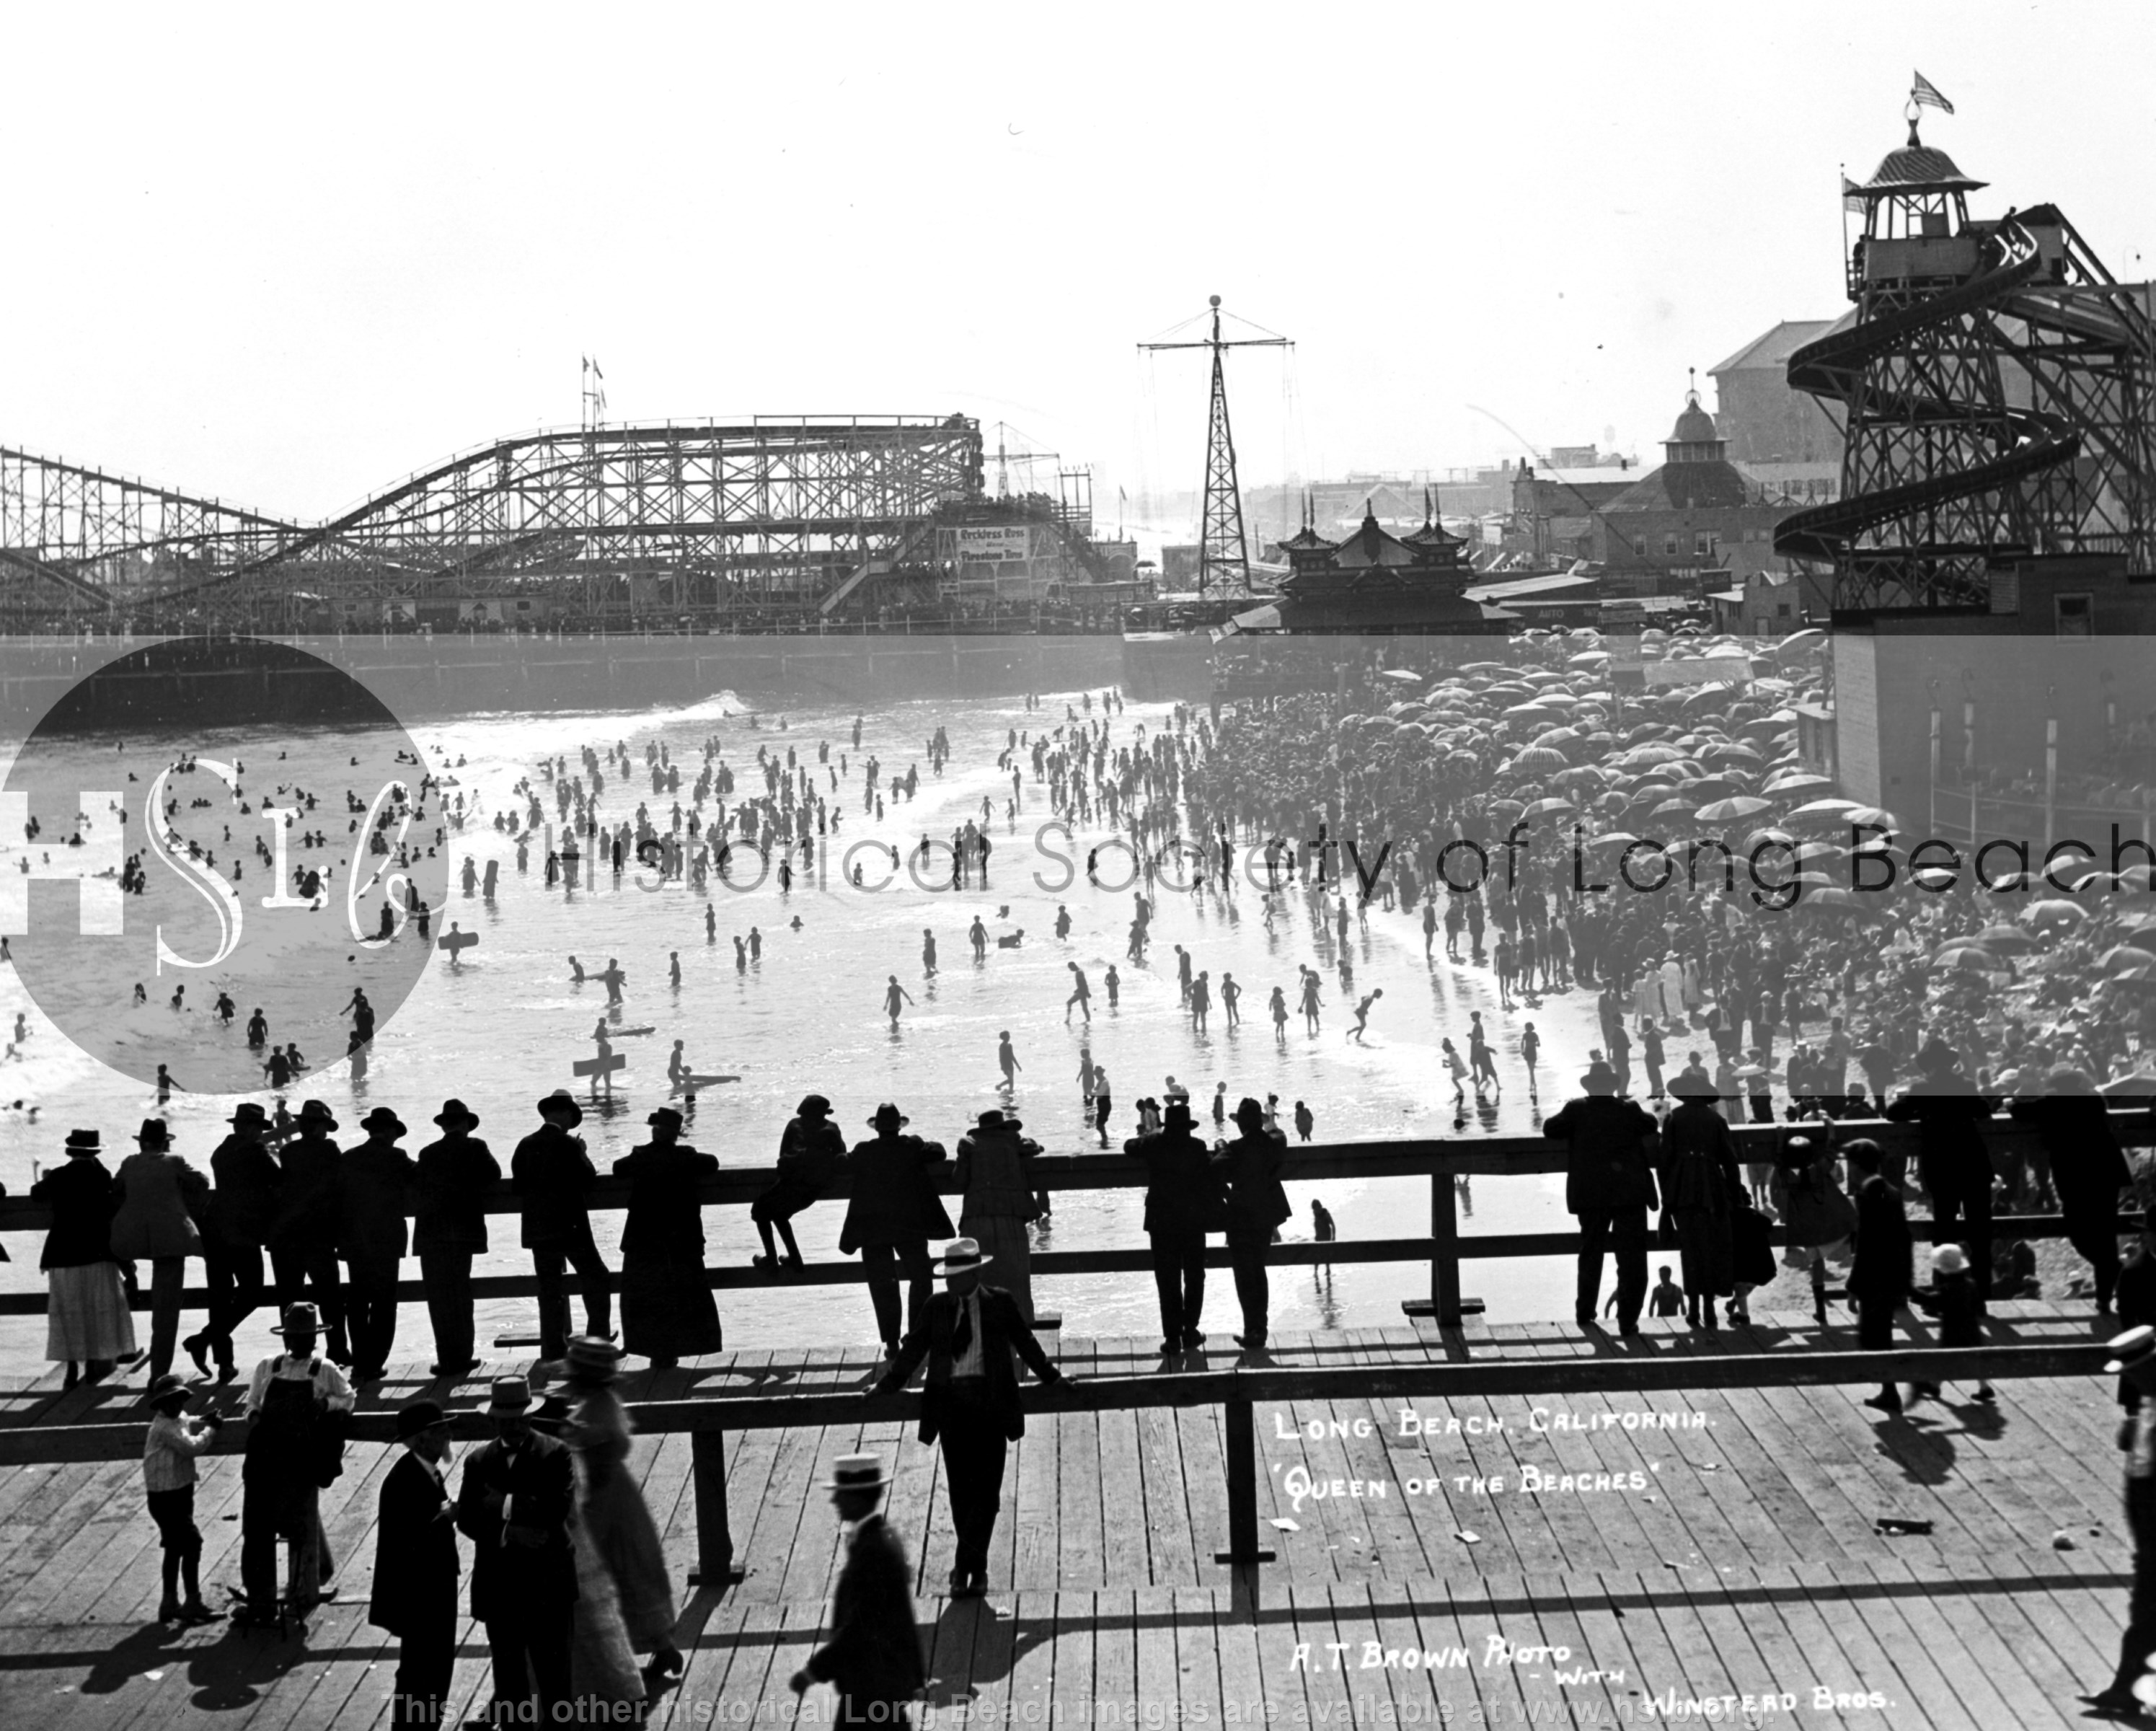 Pike from Pine Ave. Pier, 1915